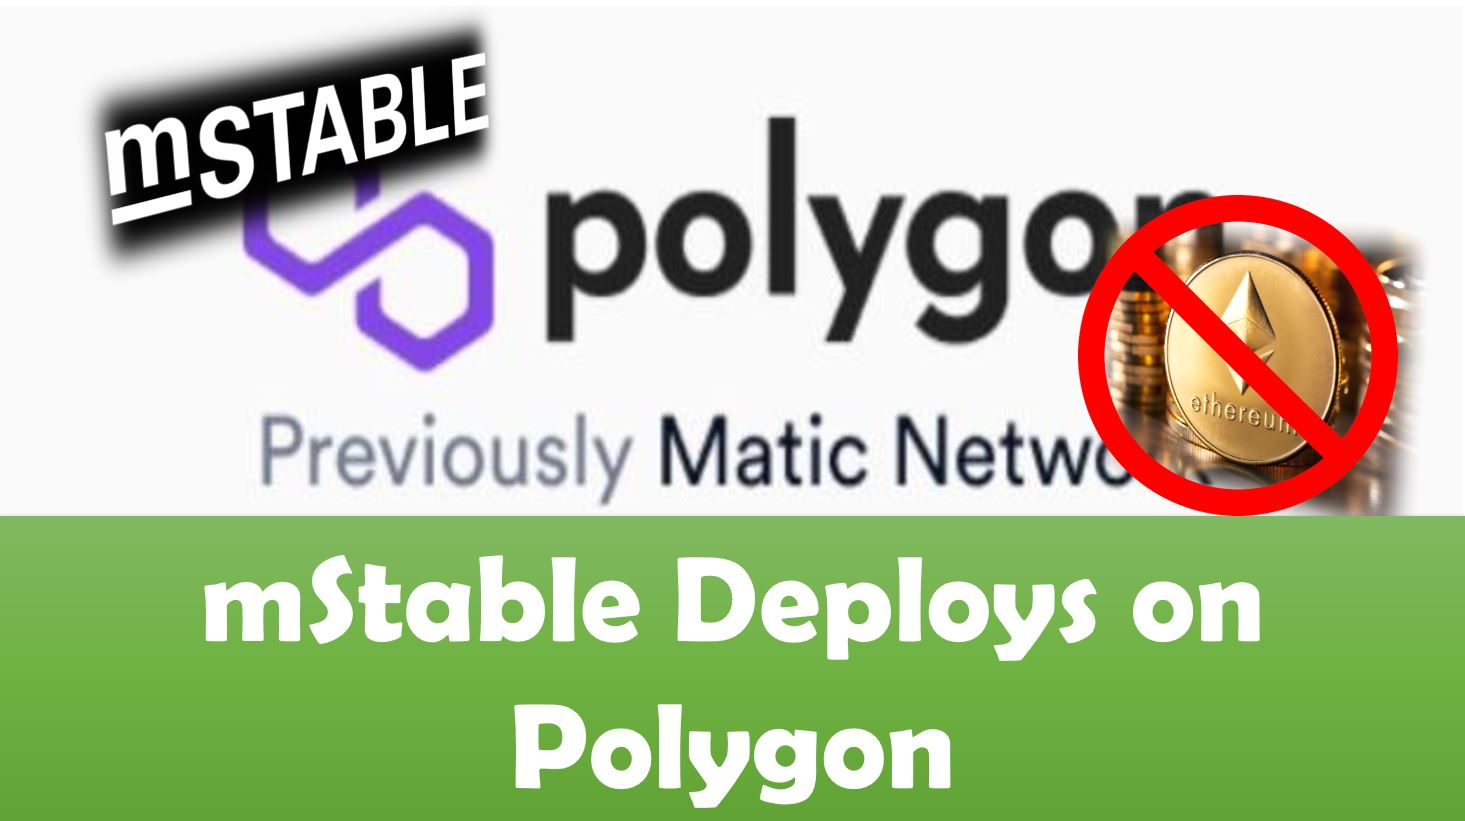 mStable Deploys on Polygon